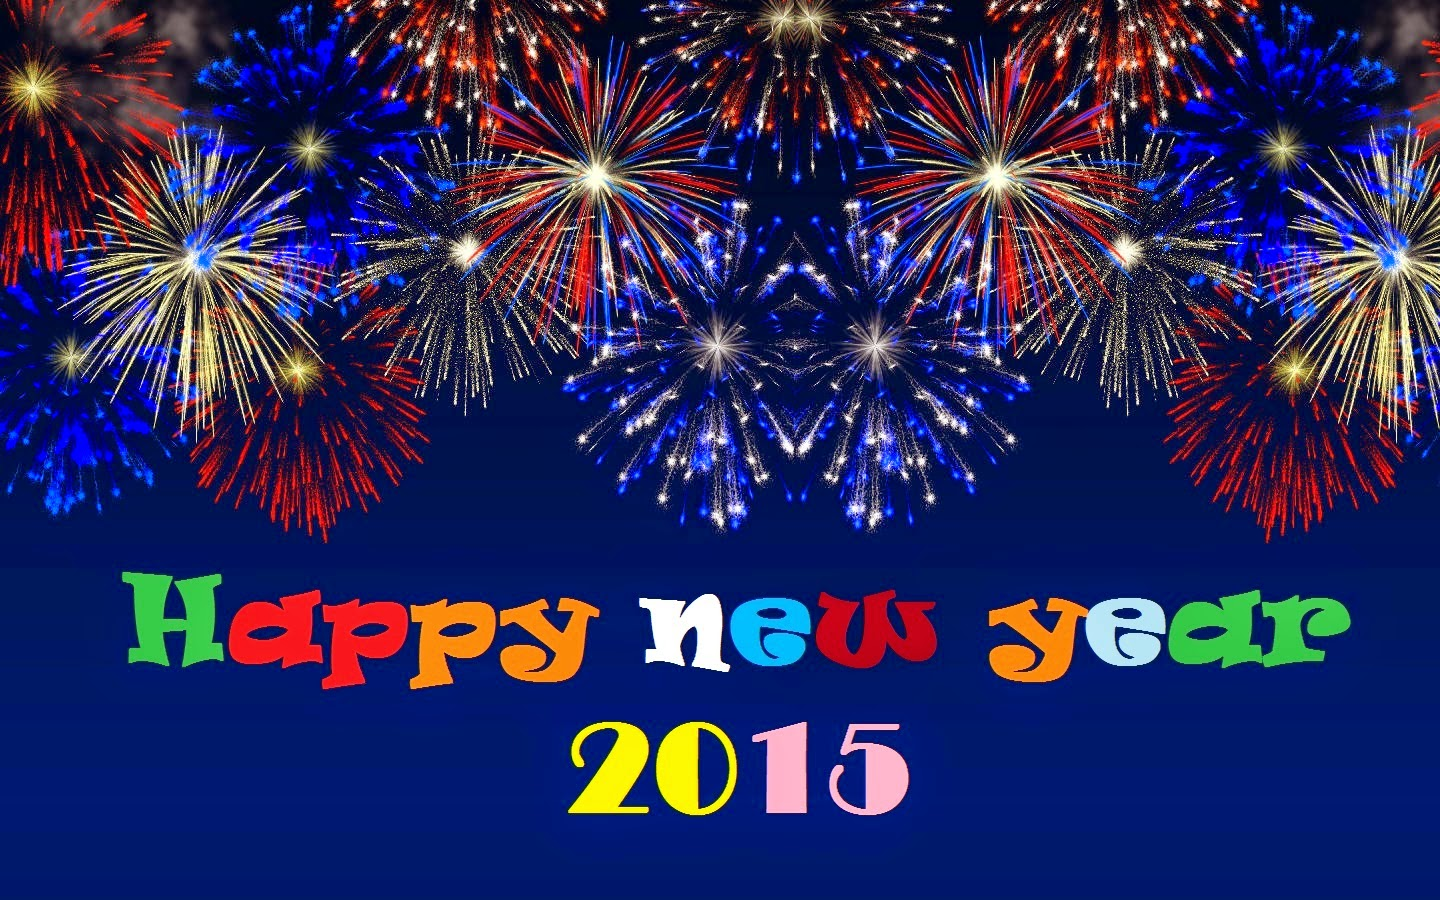 Happy new year happy new year greeting and wishes wallpapers happy new year wishes wallpapers kristyandbryce Gallery